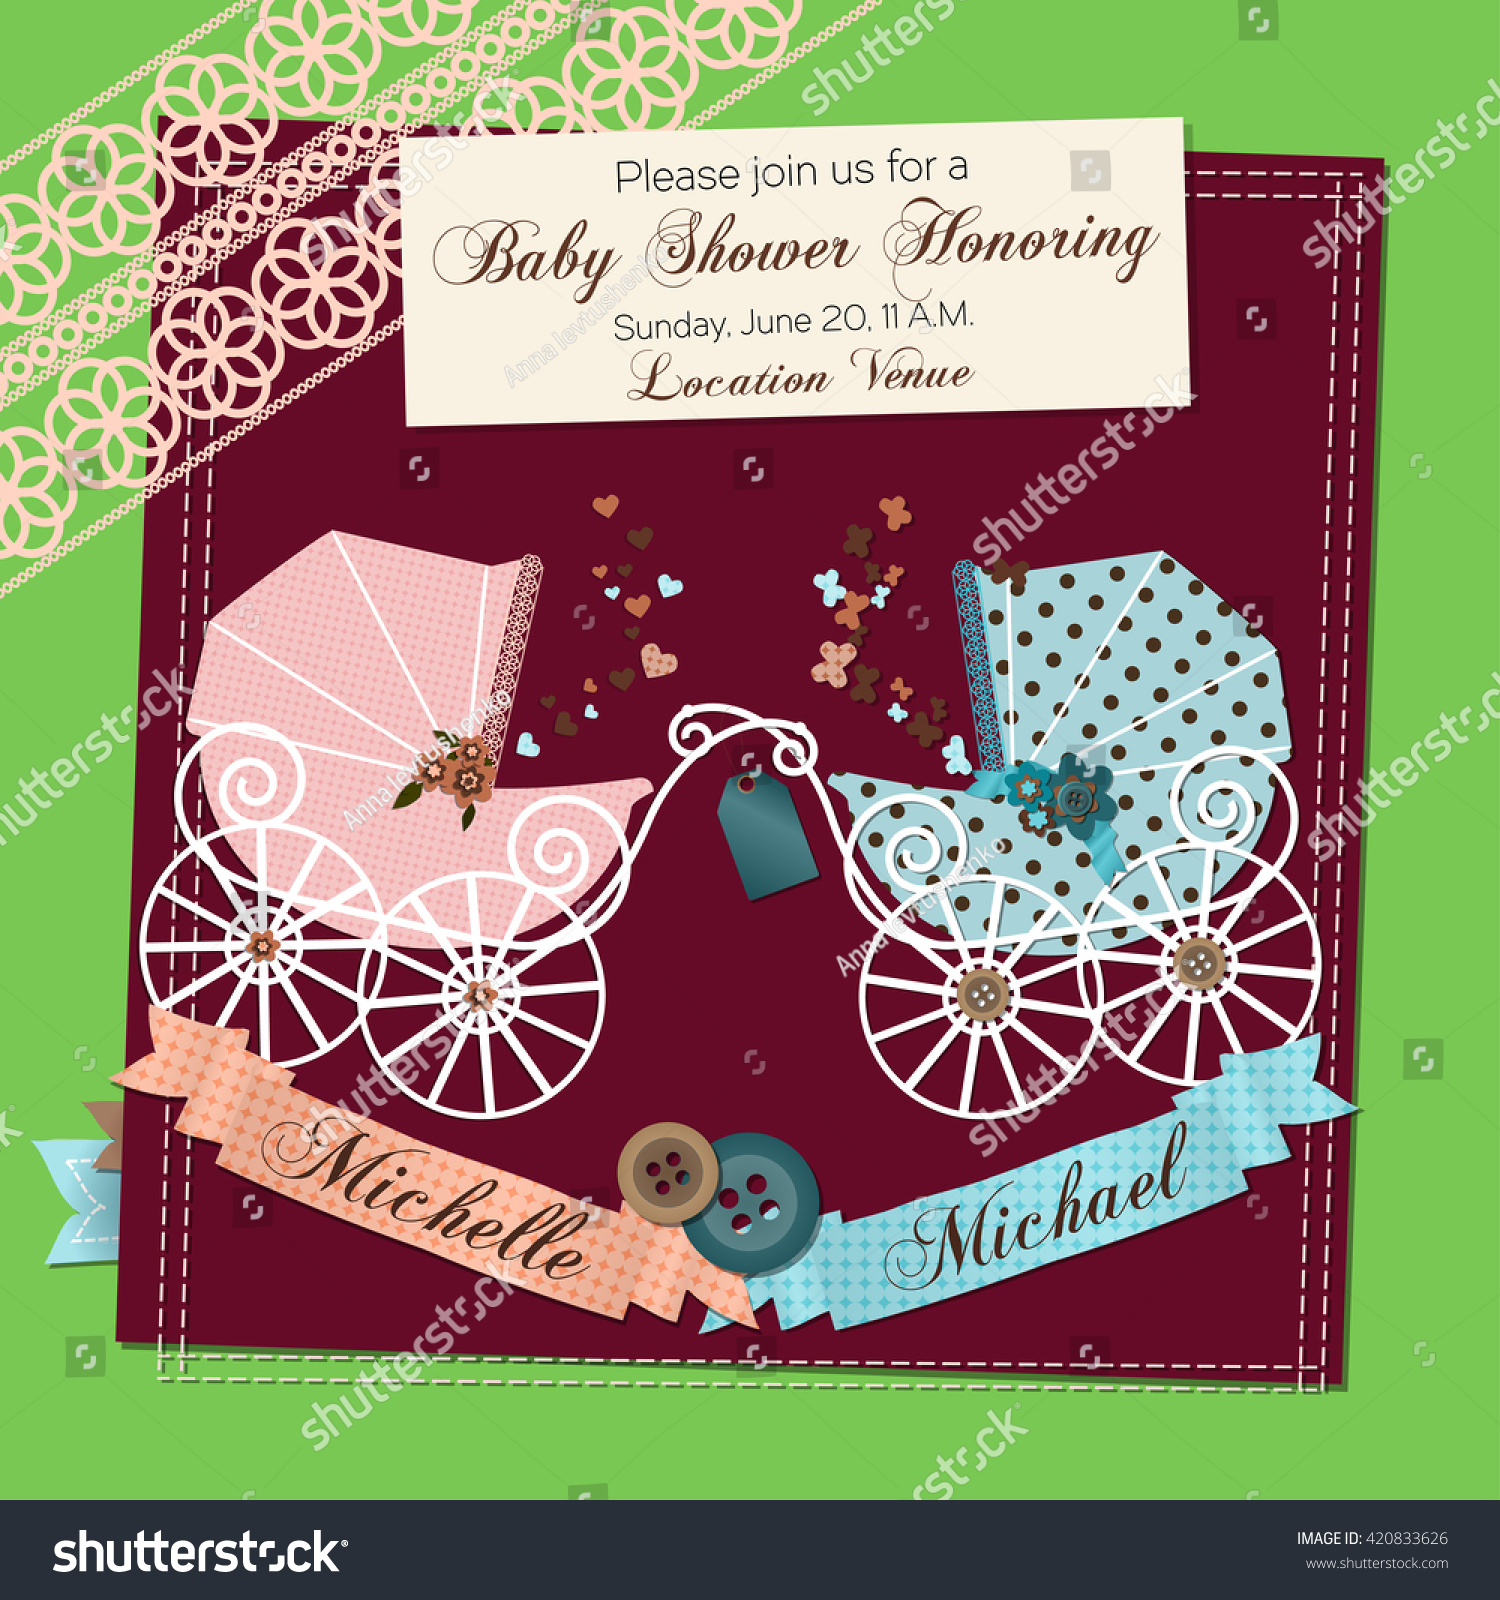 Twins Baby Shower Invitation Template Vector Stock Photo (Photo ...